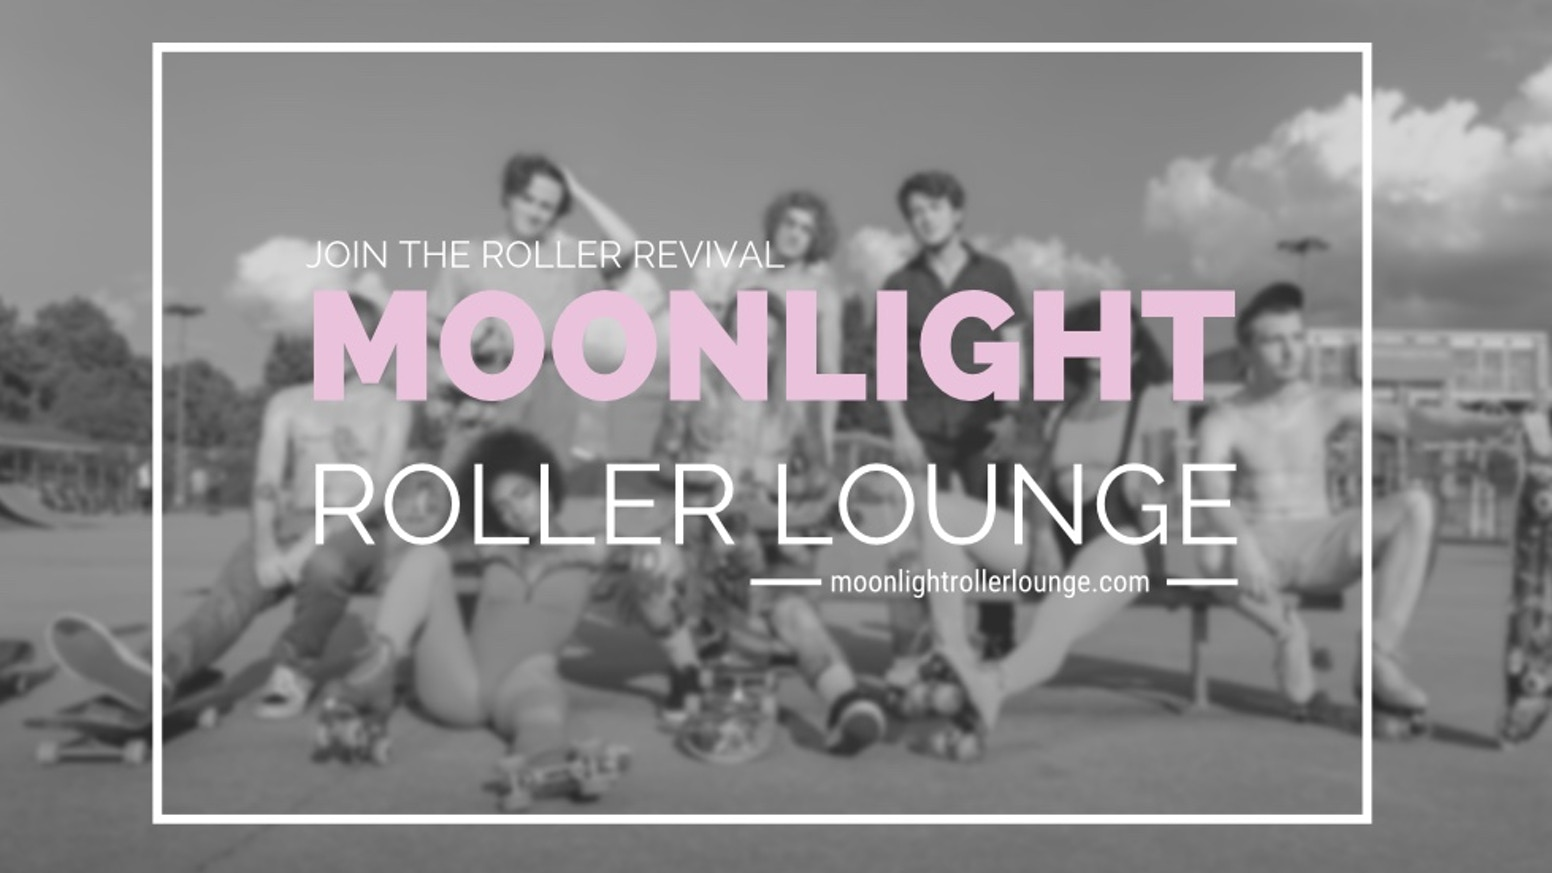 The Southeast's first 18+ roller rink & bar. Coming to Tennessee summer 2020.